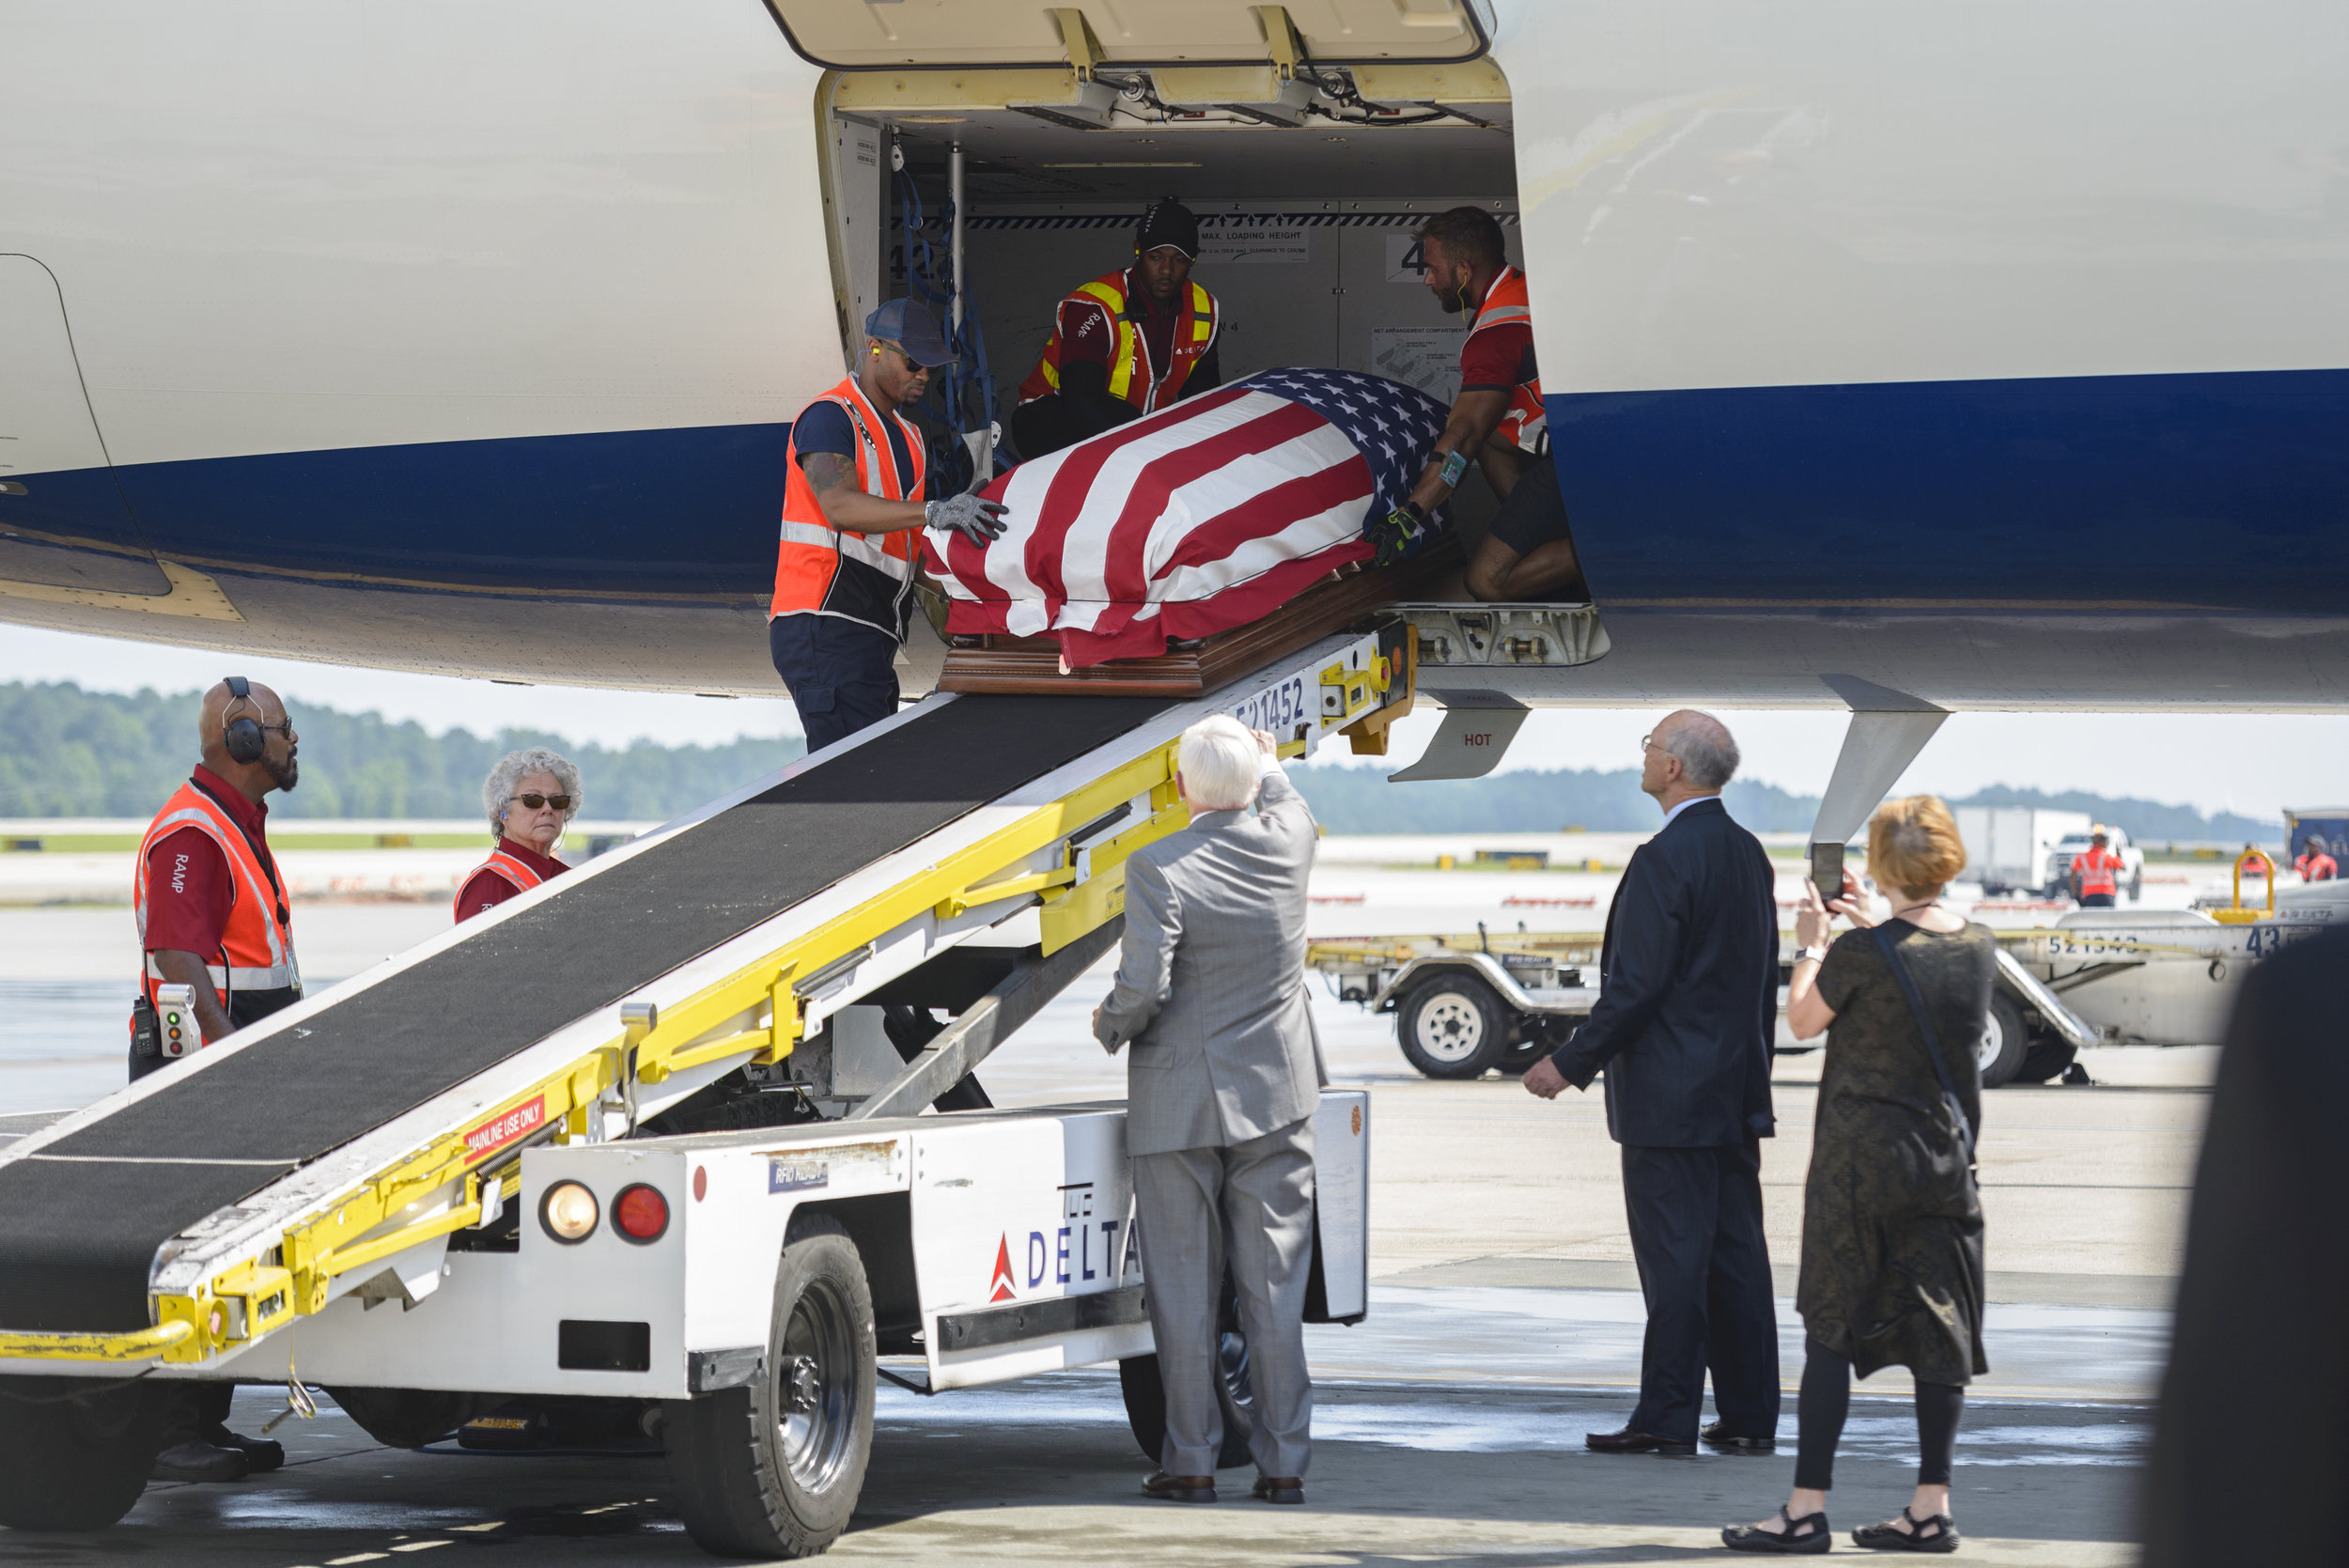 Army Pfc. William H. Jones remains arrive at RDU Airport in Raleigh, NC on June 20, 2019. Jones went missing-in-action during the Korean War on Nov 26, 1950. Several decades passed before his body was recovered after North Korea turned over 55 boxes containing the remains of American service members killed during the Korean War.